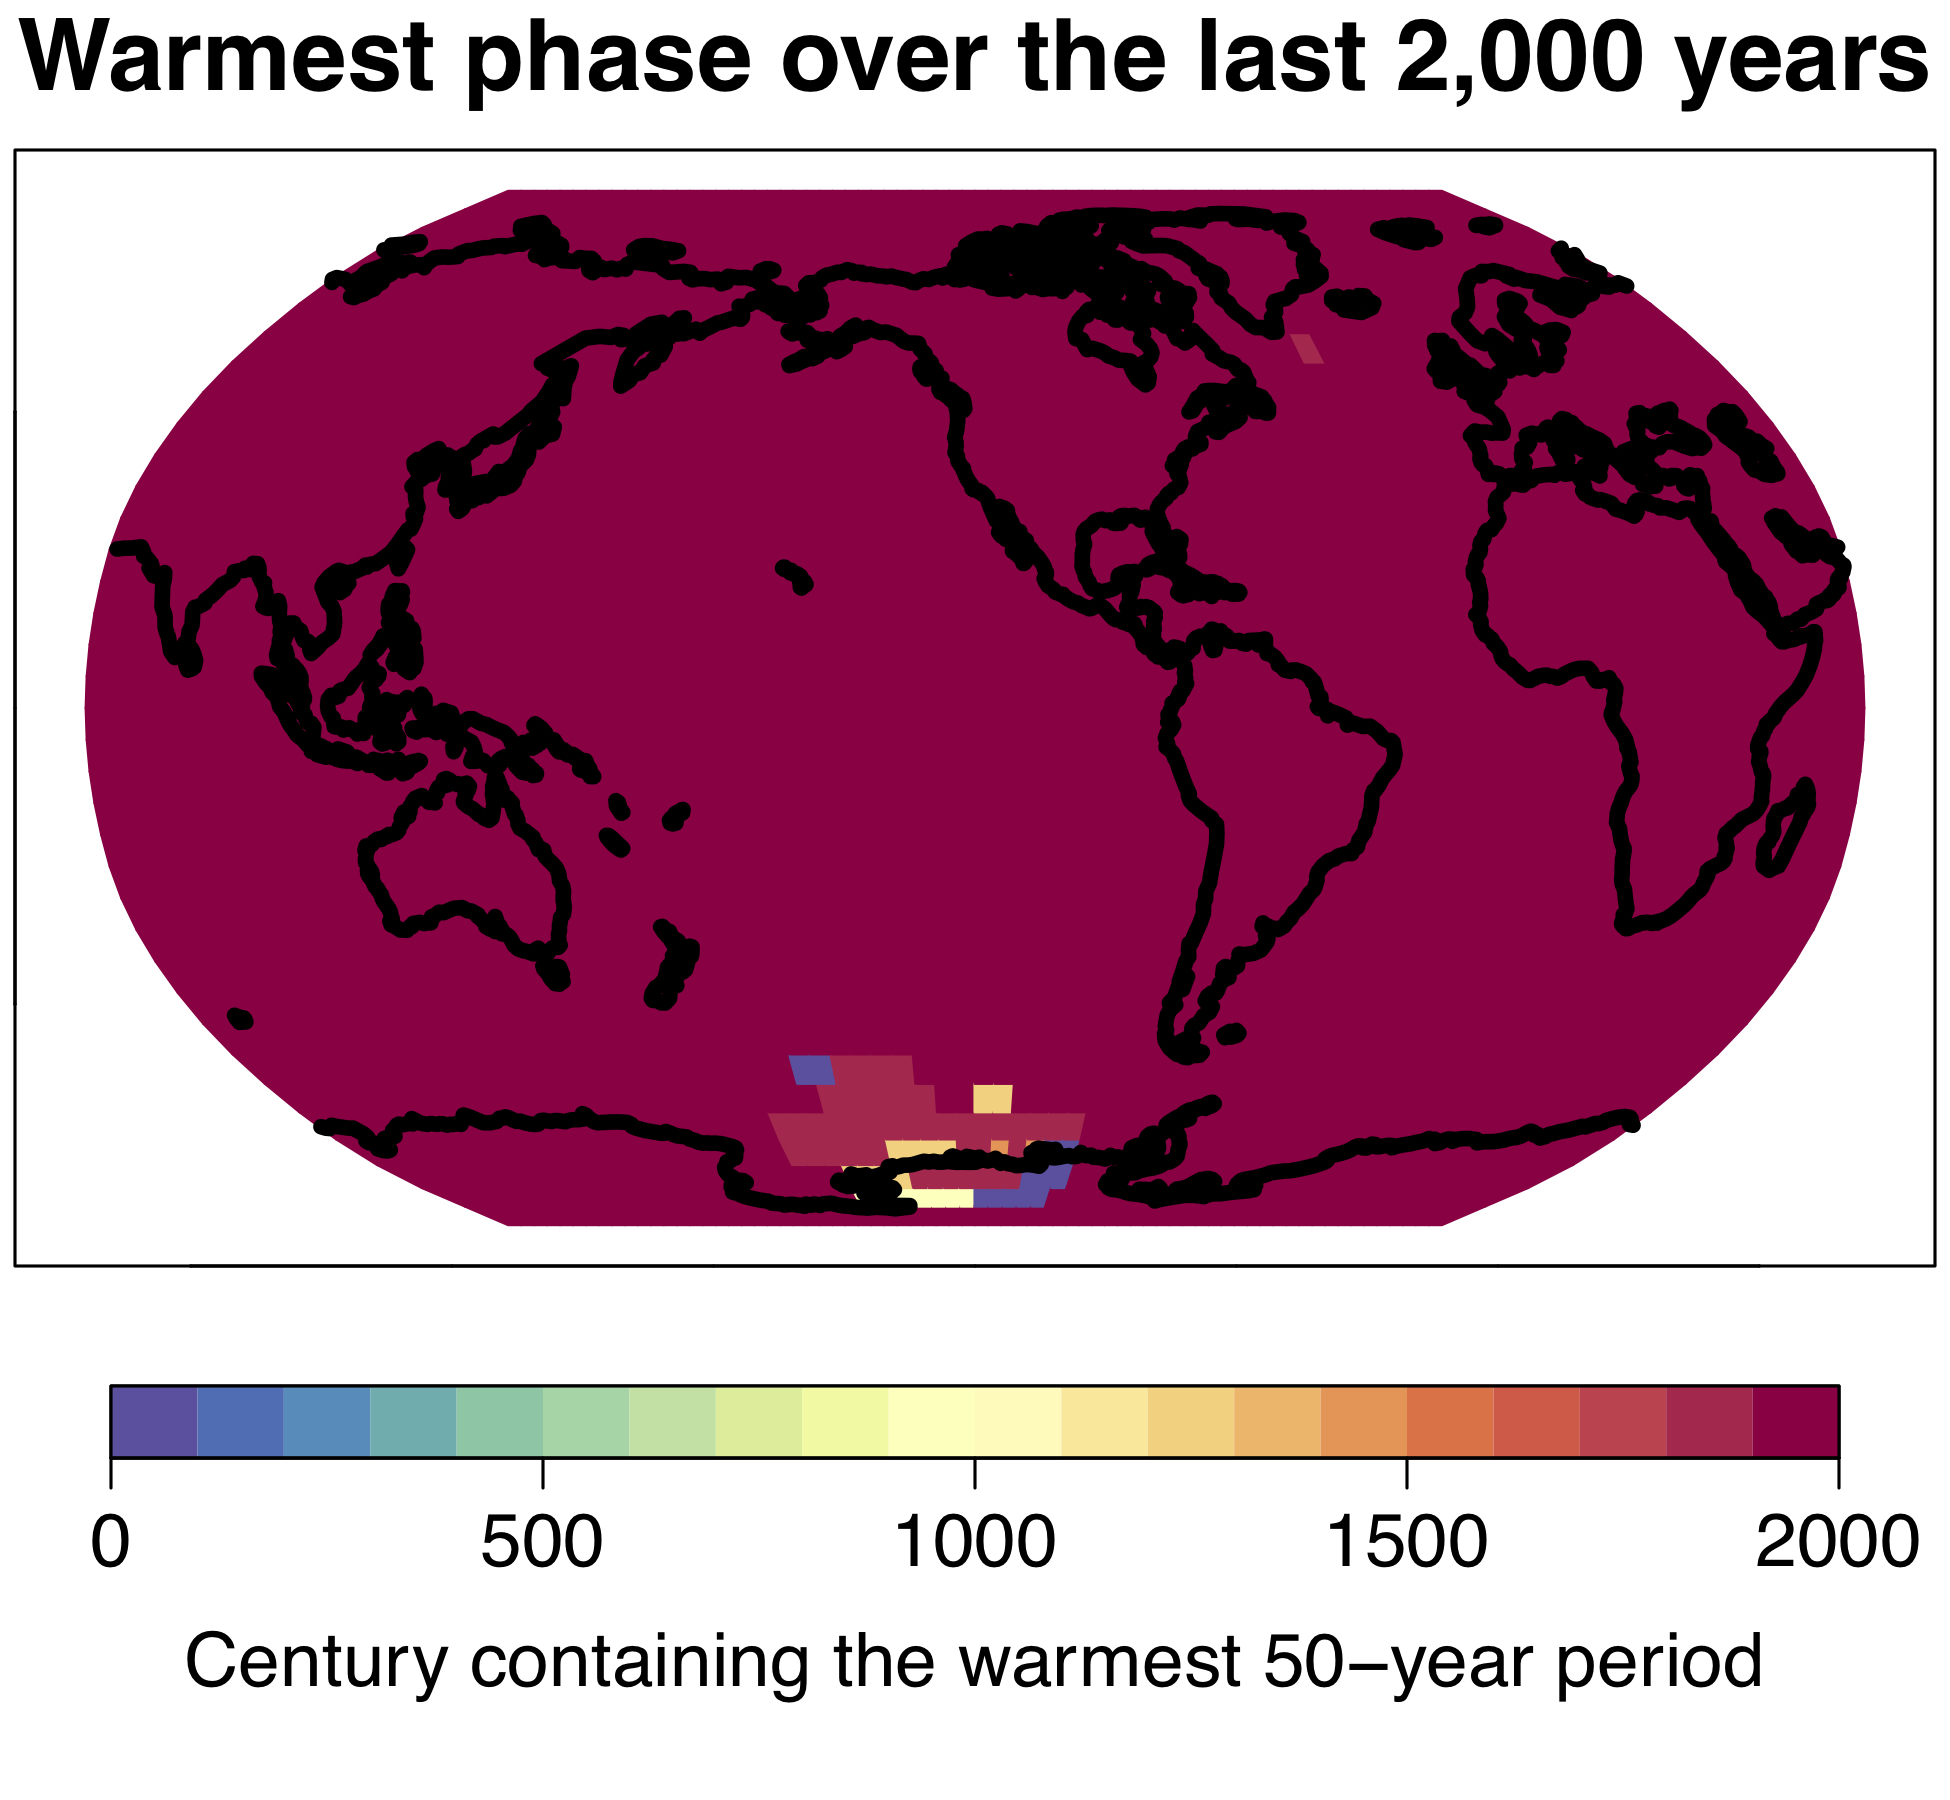 Modern global warming is a global phenomenon; the warmest 50-year period of the last 2000 years occurred on more than 98% of the earth's surface in the 20th century.  © University of Bern